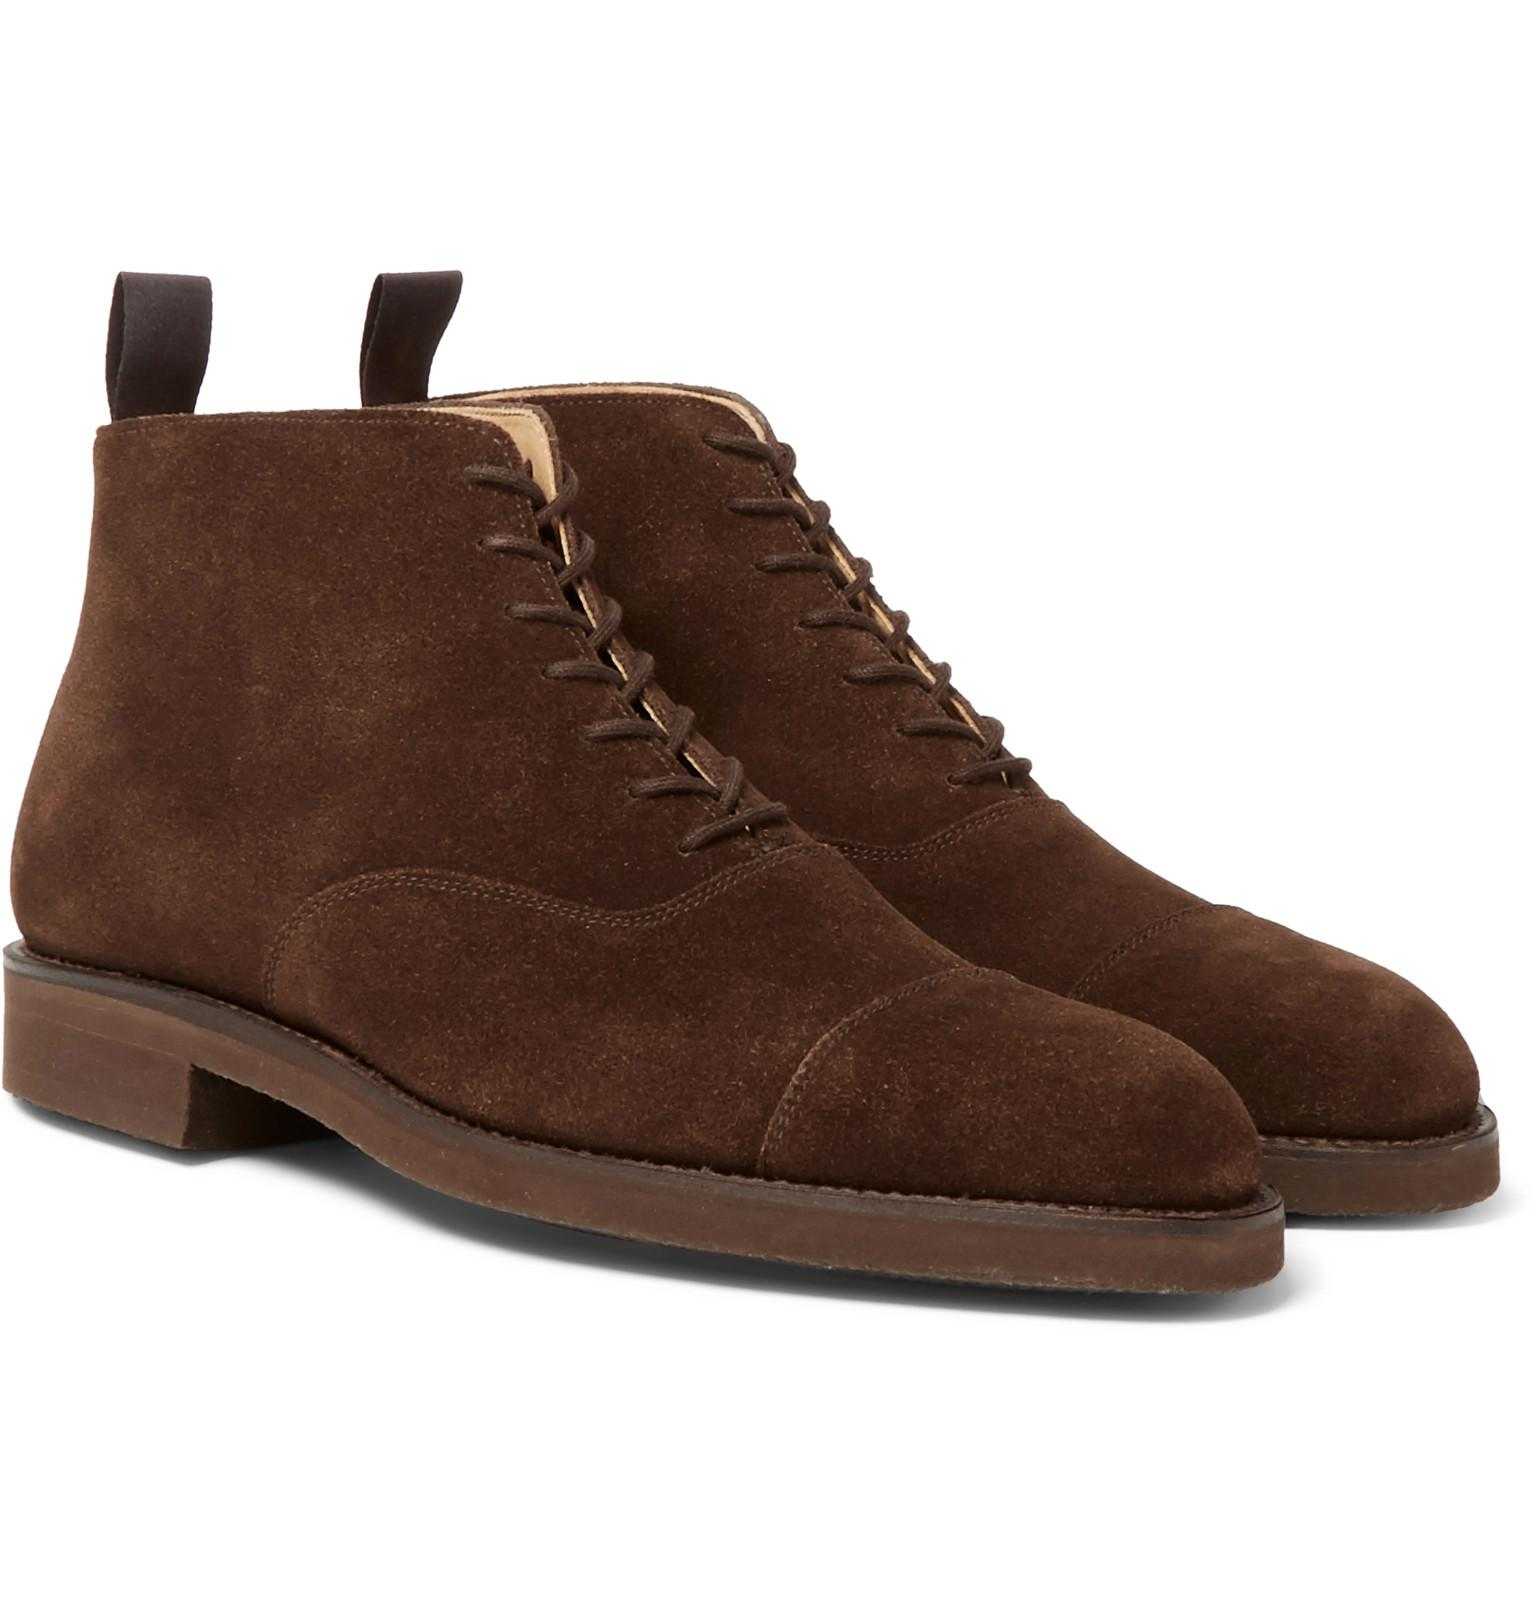 William Cap-toe Leather Boots George Cleverley 2018 New Cheap Price Sneakernews Cheap Price kUQEgCt